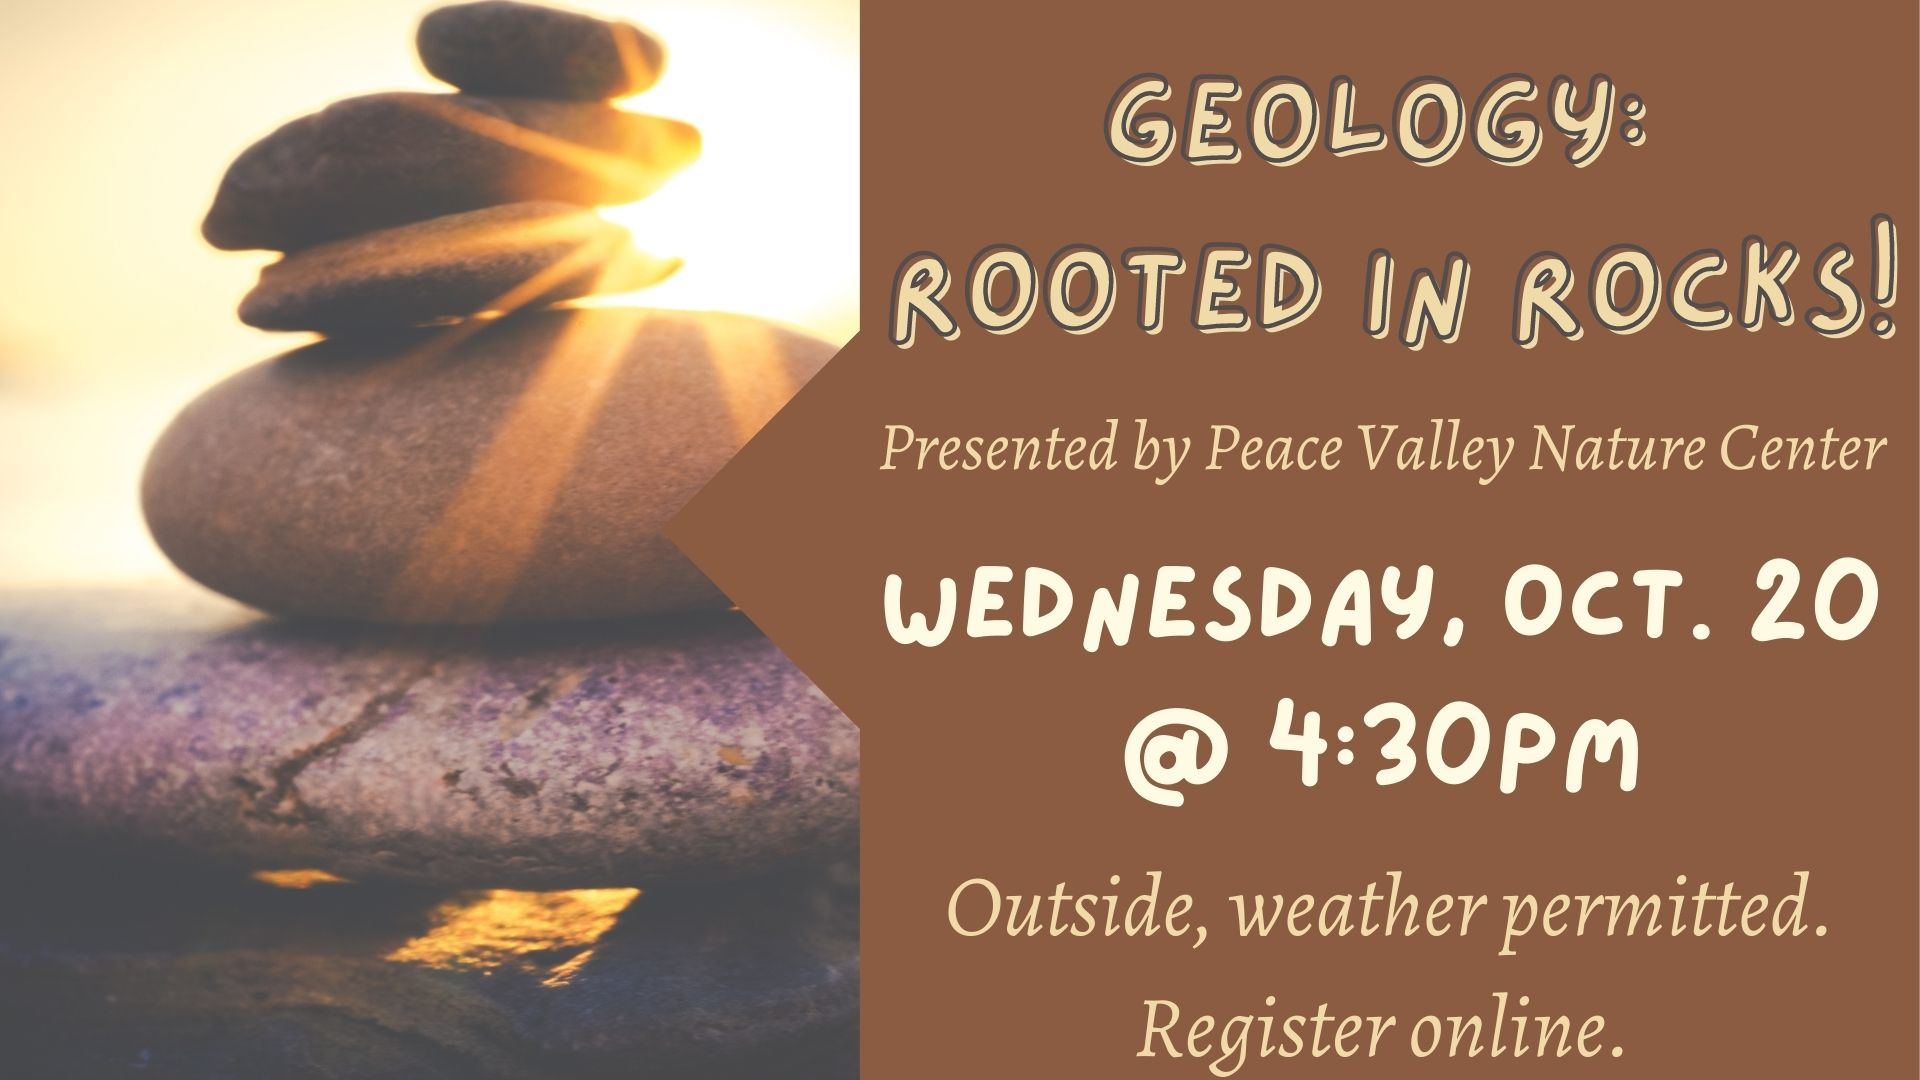 Peace Valley Nature Center: Geology